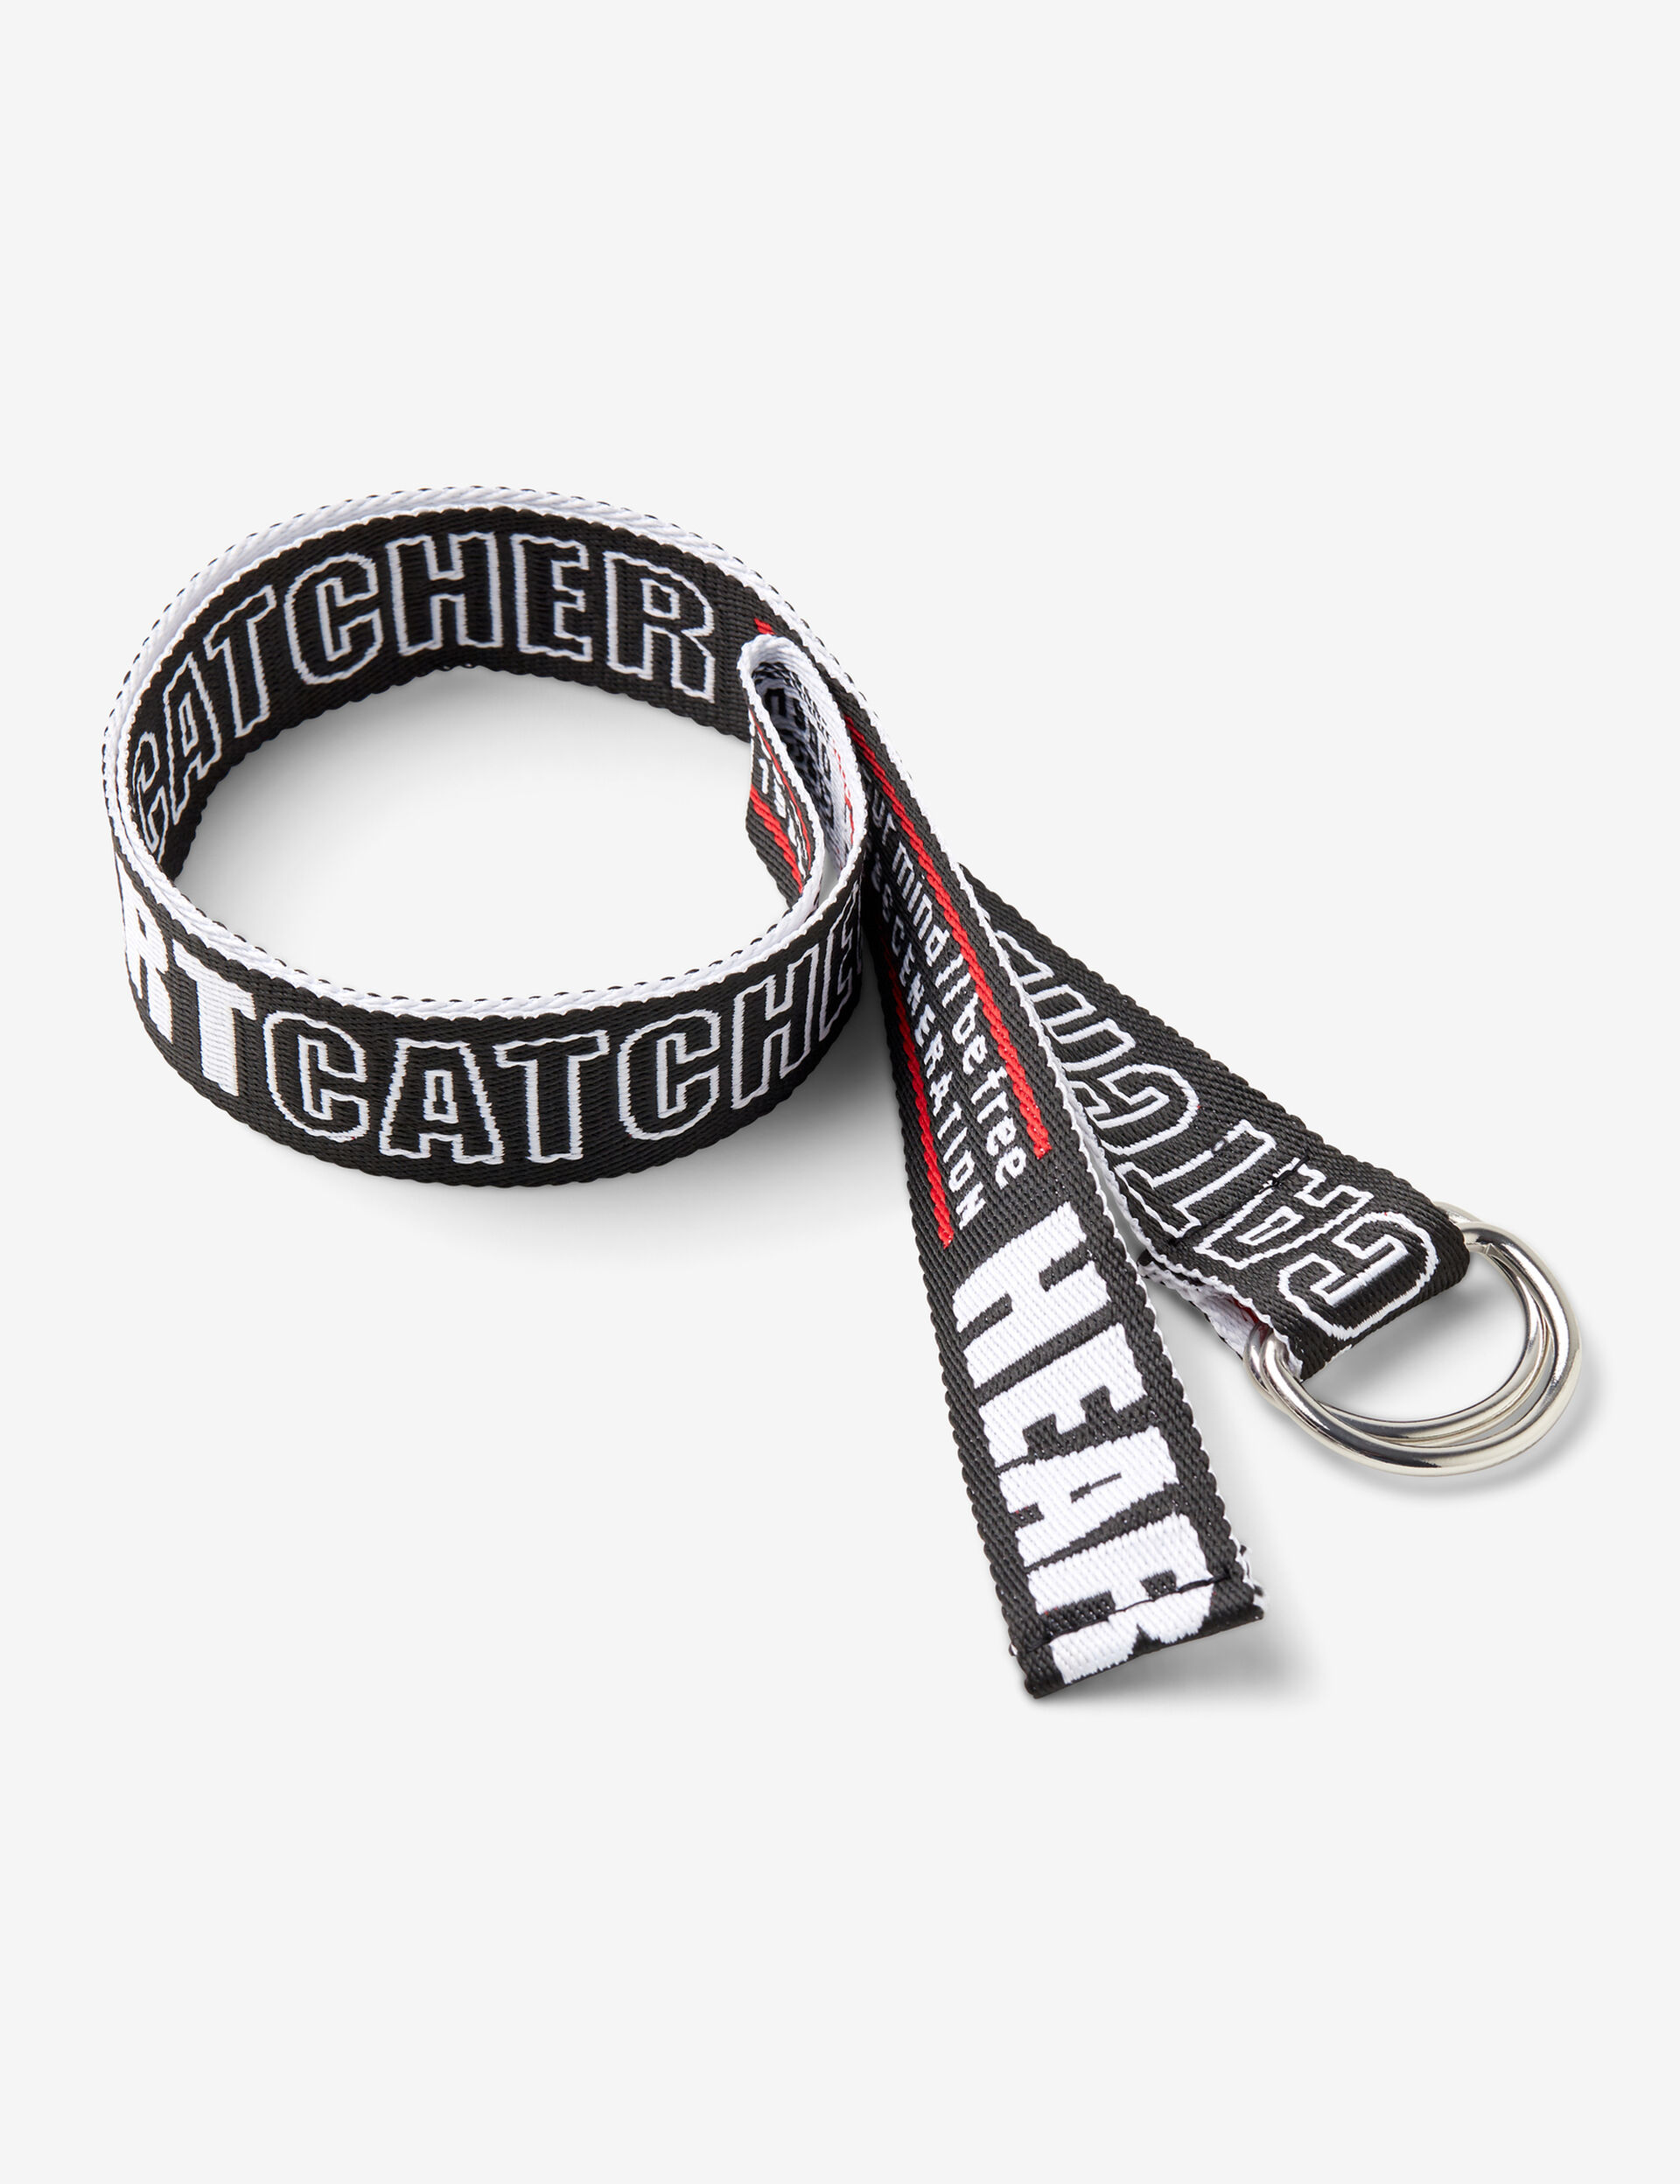 Heart catcher belt